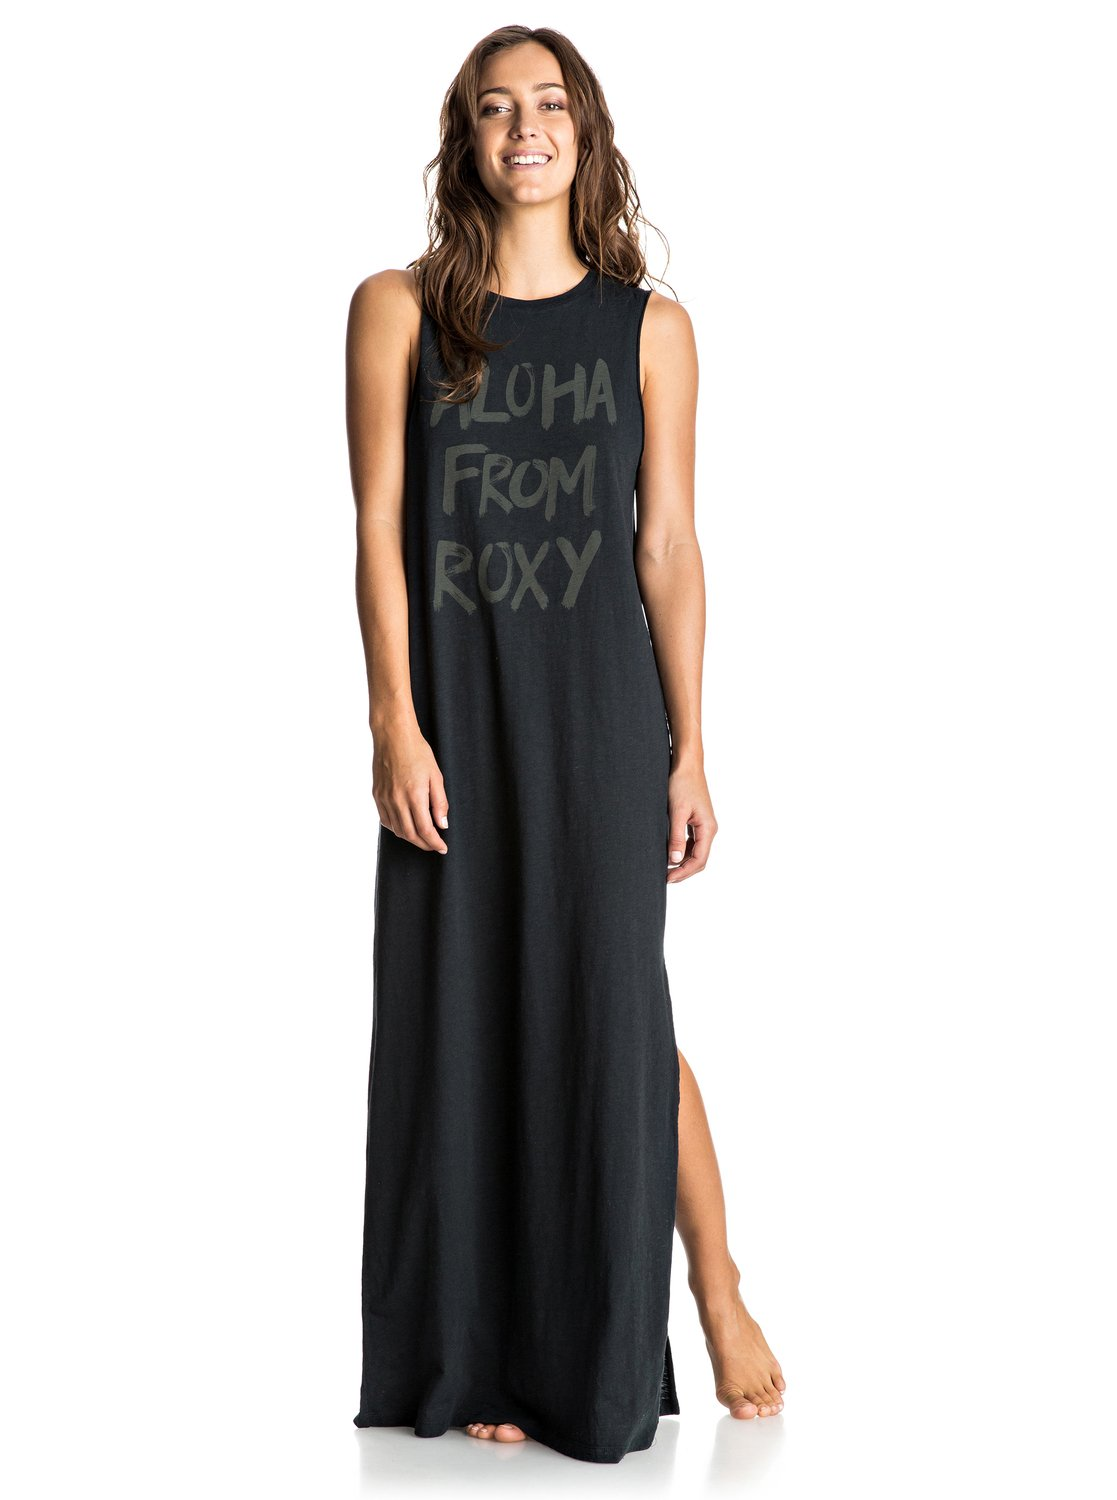 Платье на лямочках Earlybird C Maxi Roxy